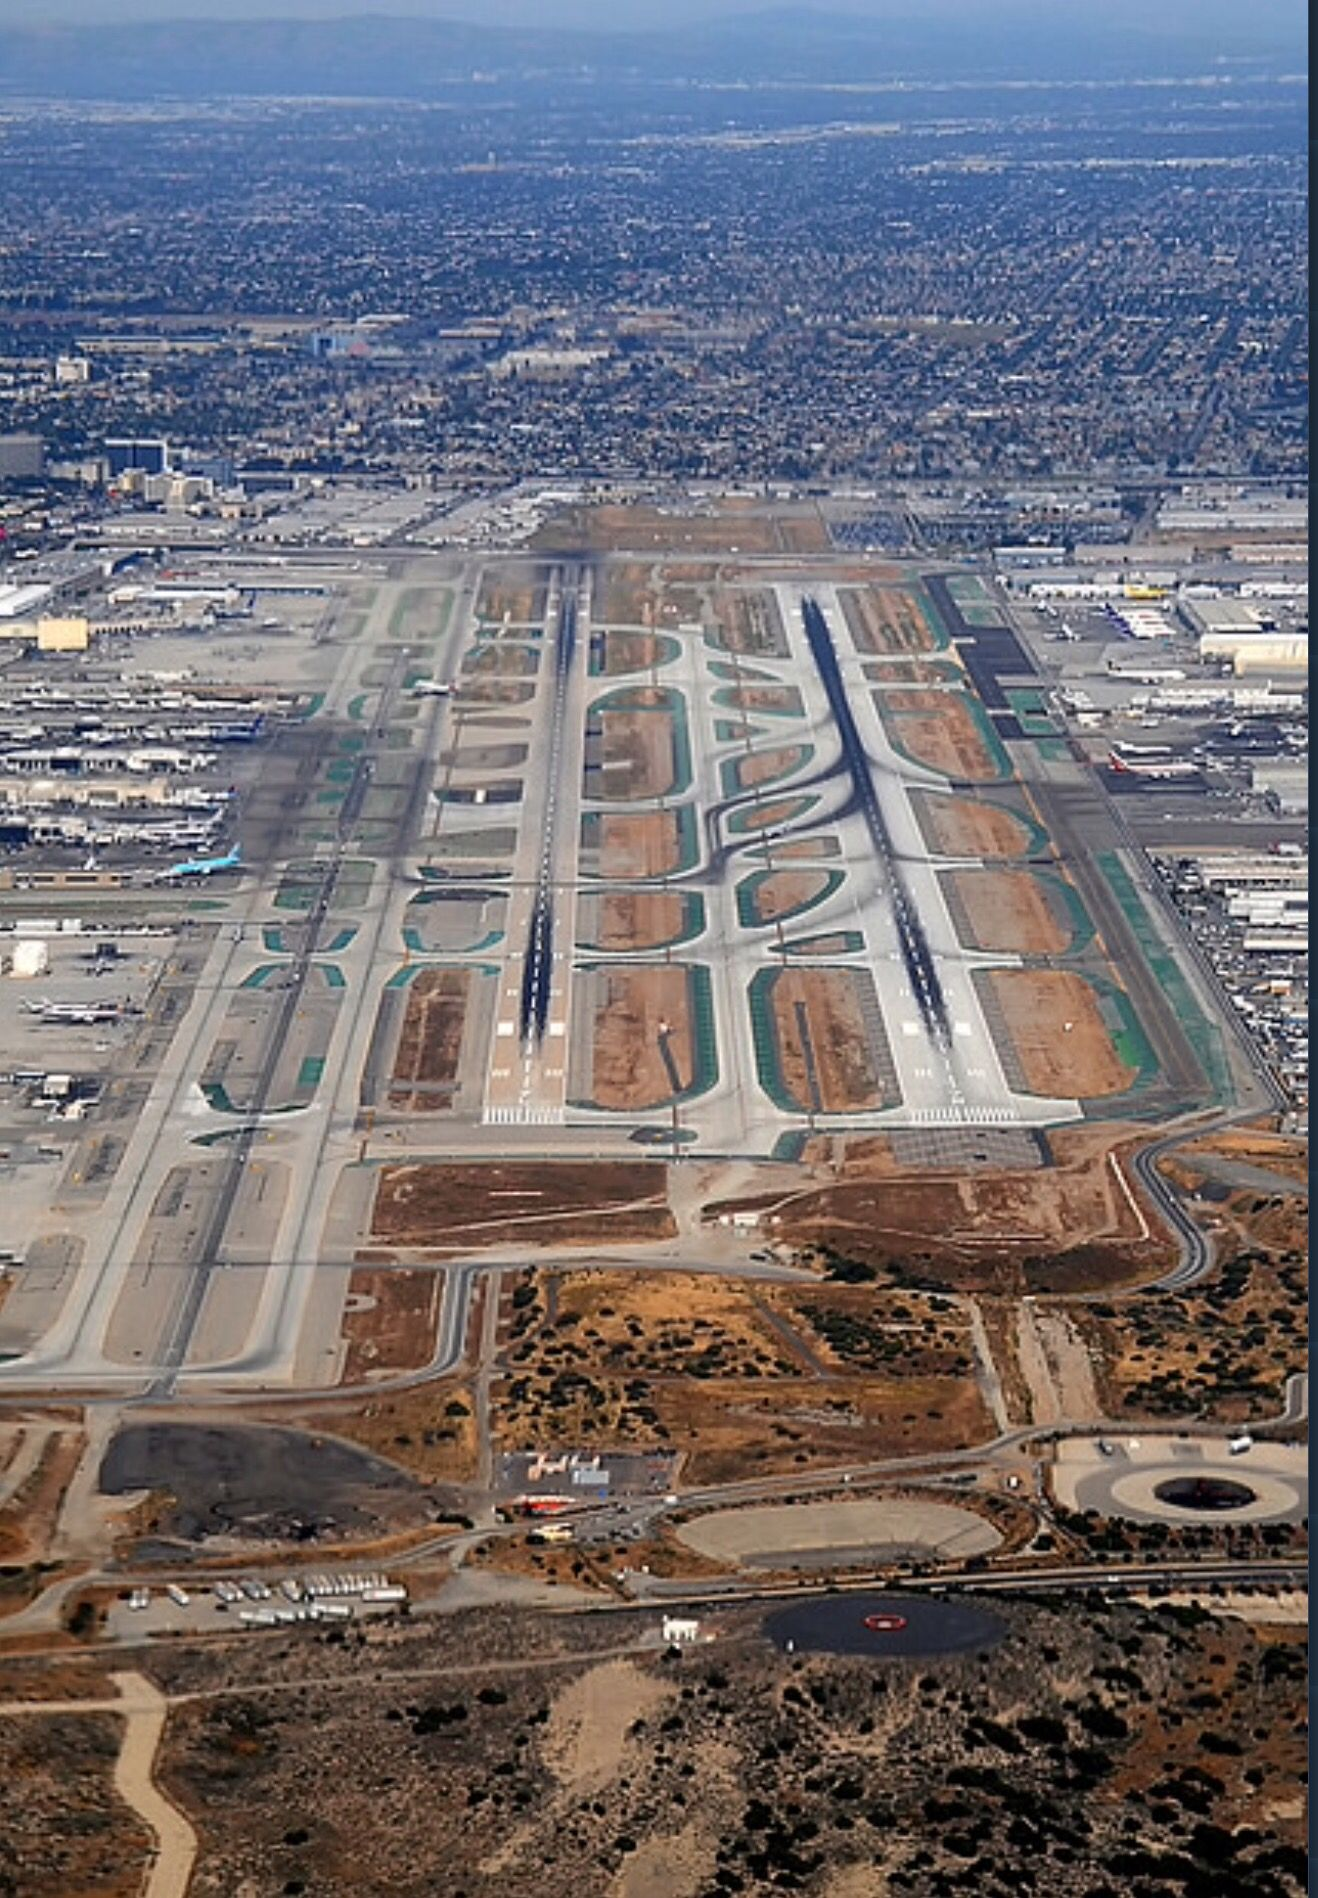 Lax Runways Aerial View Aviation Aircraft Pictures